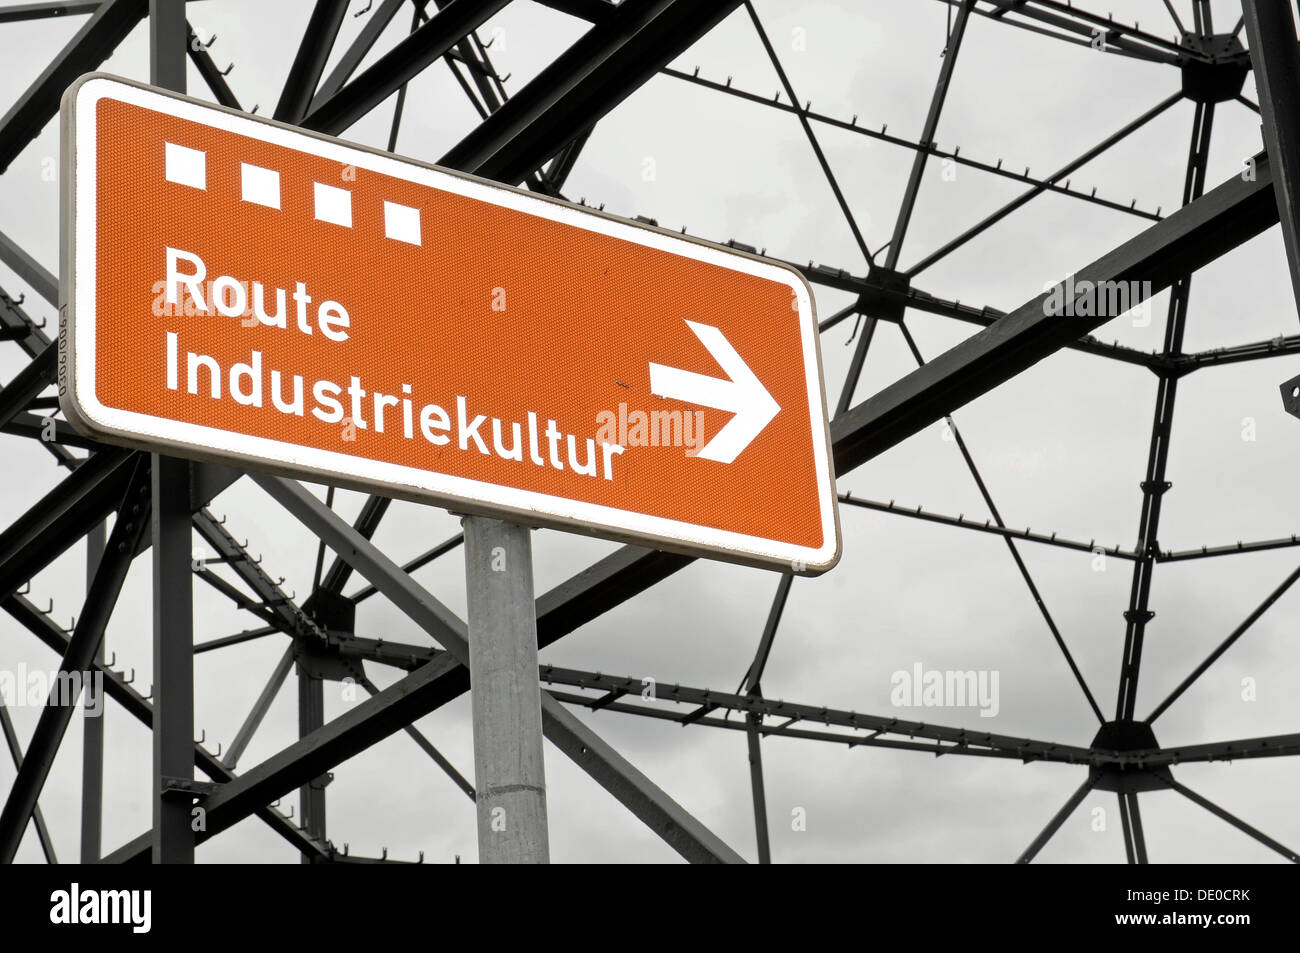 Sign, 'Route Industriekultur', German for Route of Industrial Heritage, former smelting plant, steel works, industrial site - Stock Image